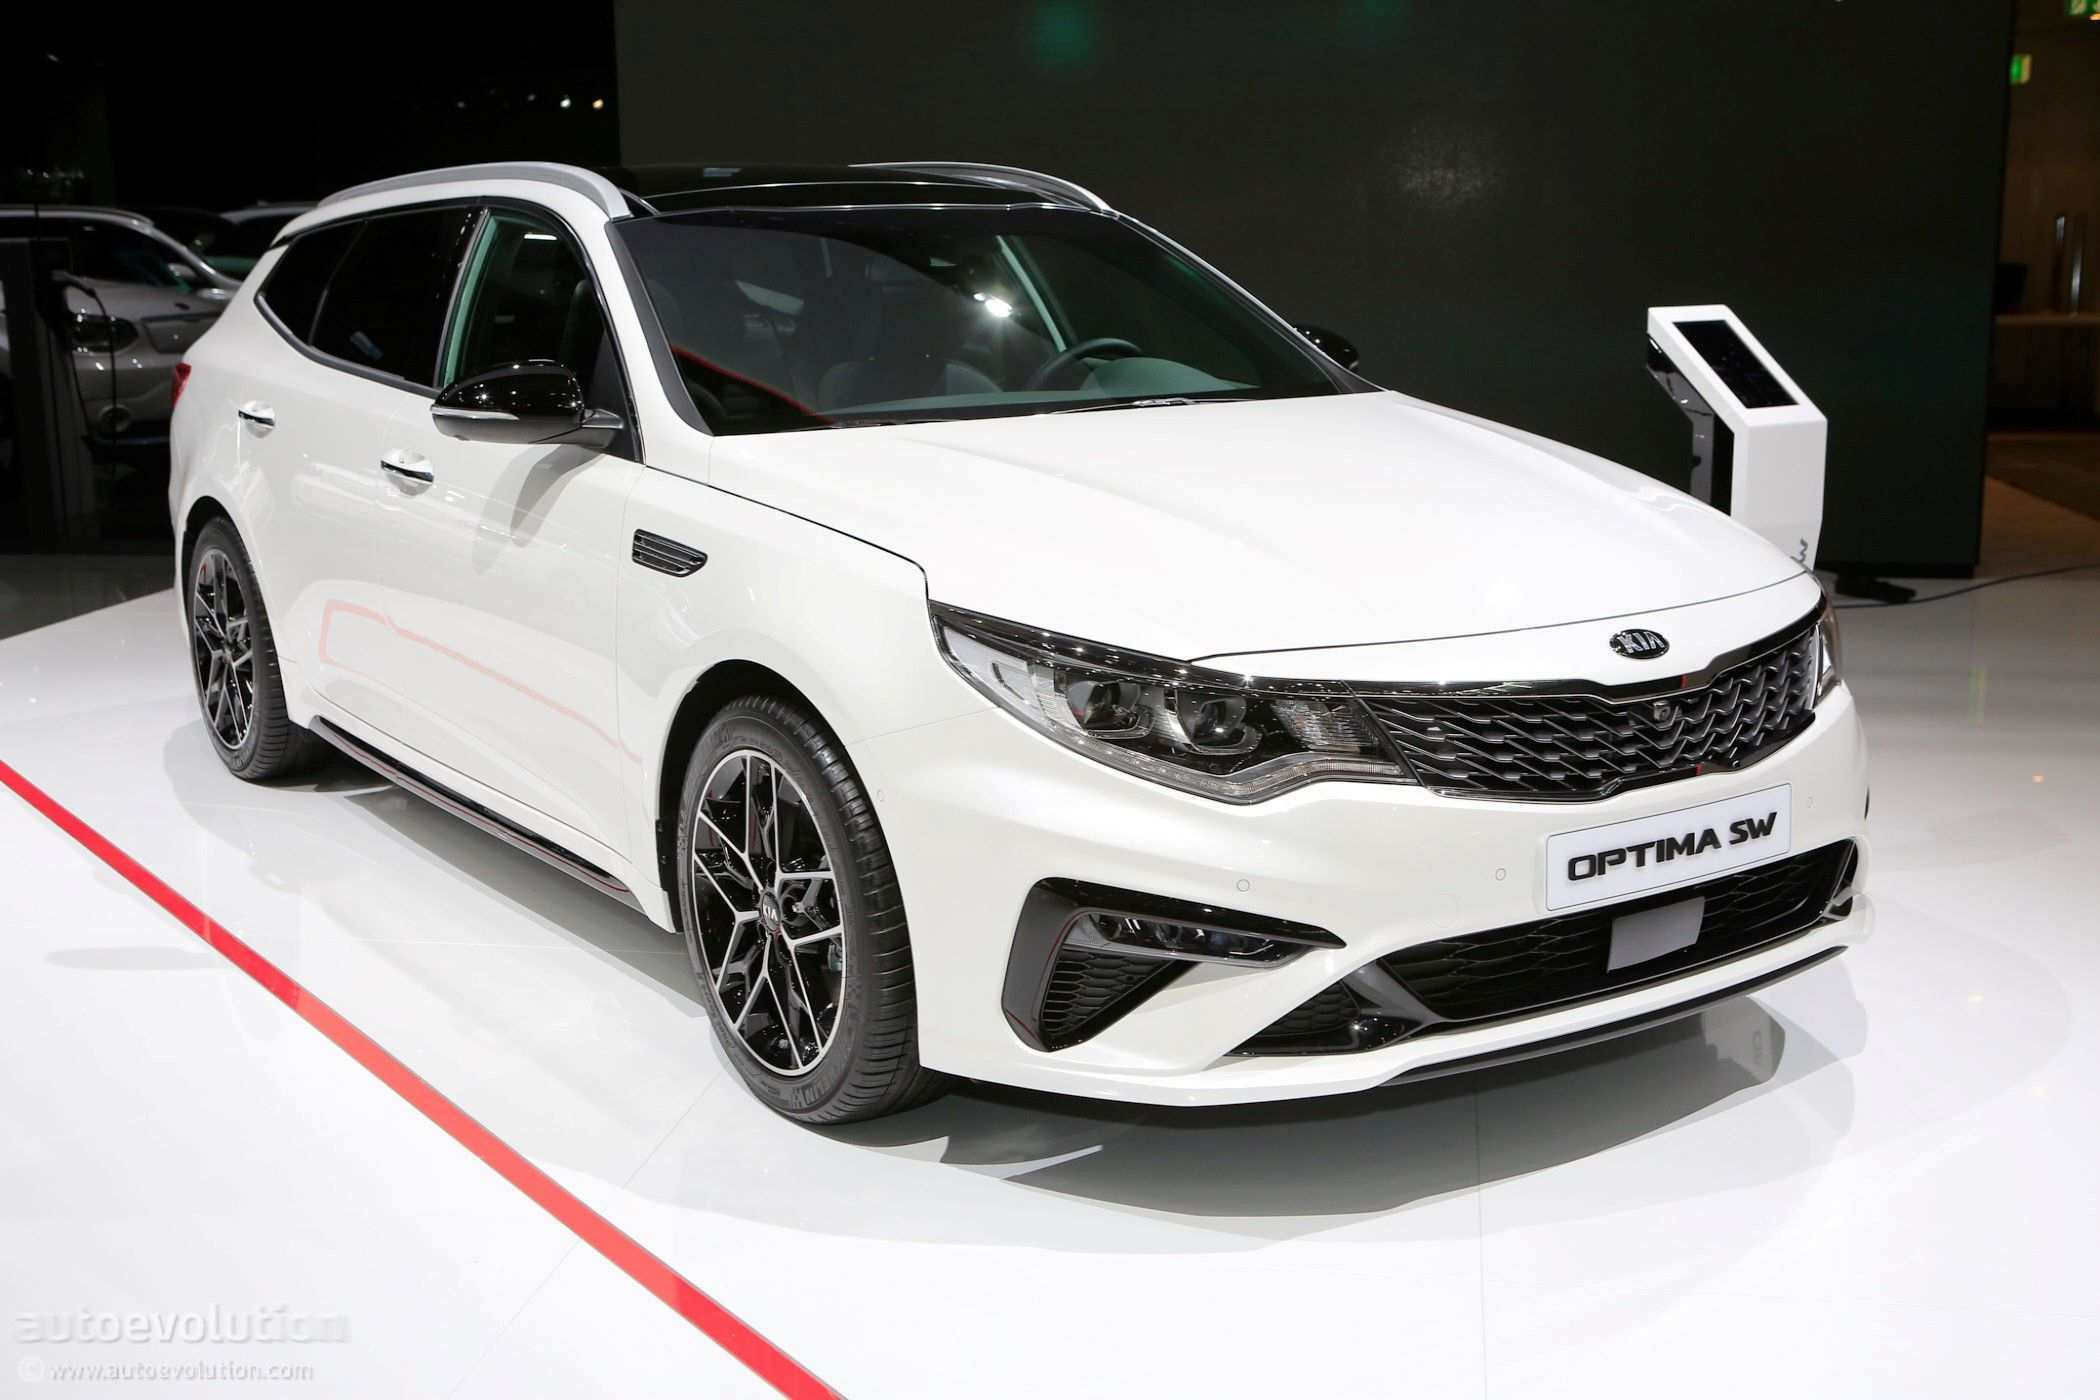 99 The 2020 Kia Optima Exterior Ratings with 2020 Kia Optima Exterior